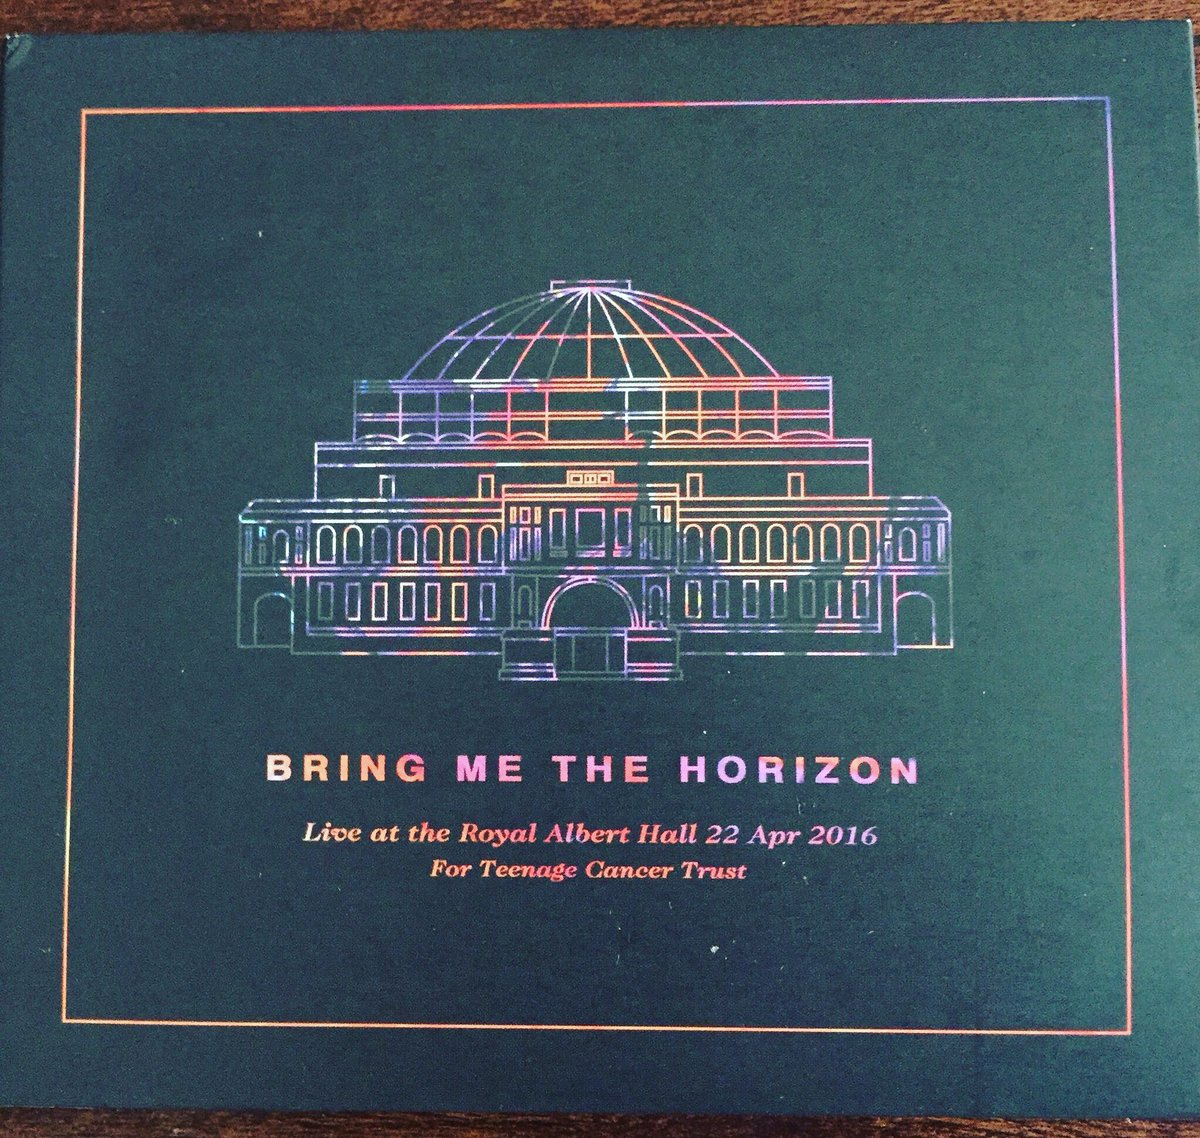 download bring me the horizon live at royal albert hall full